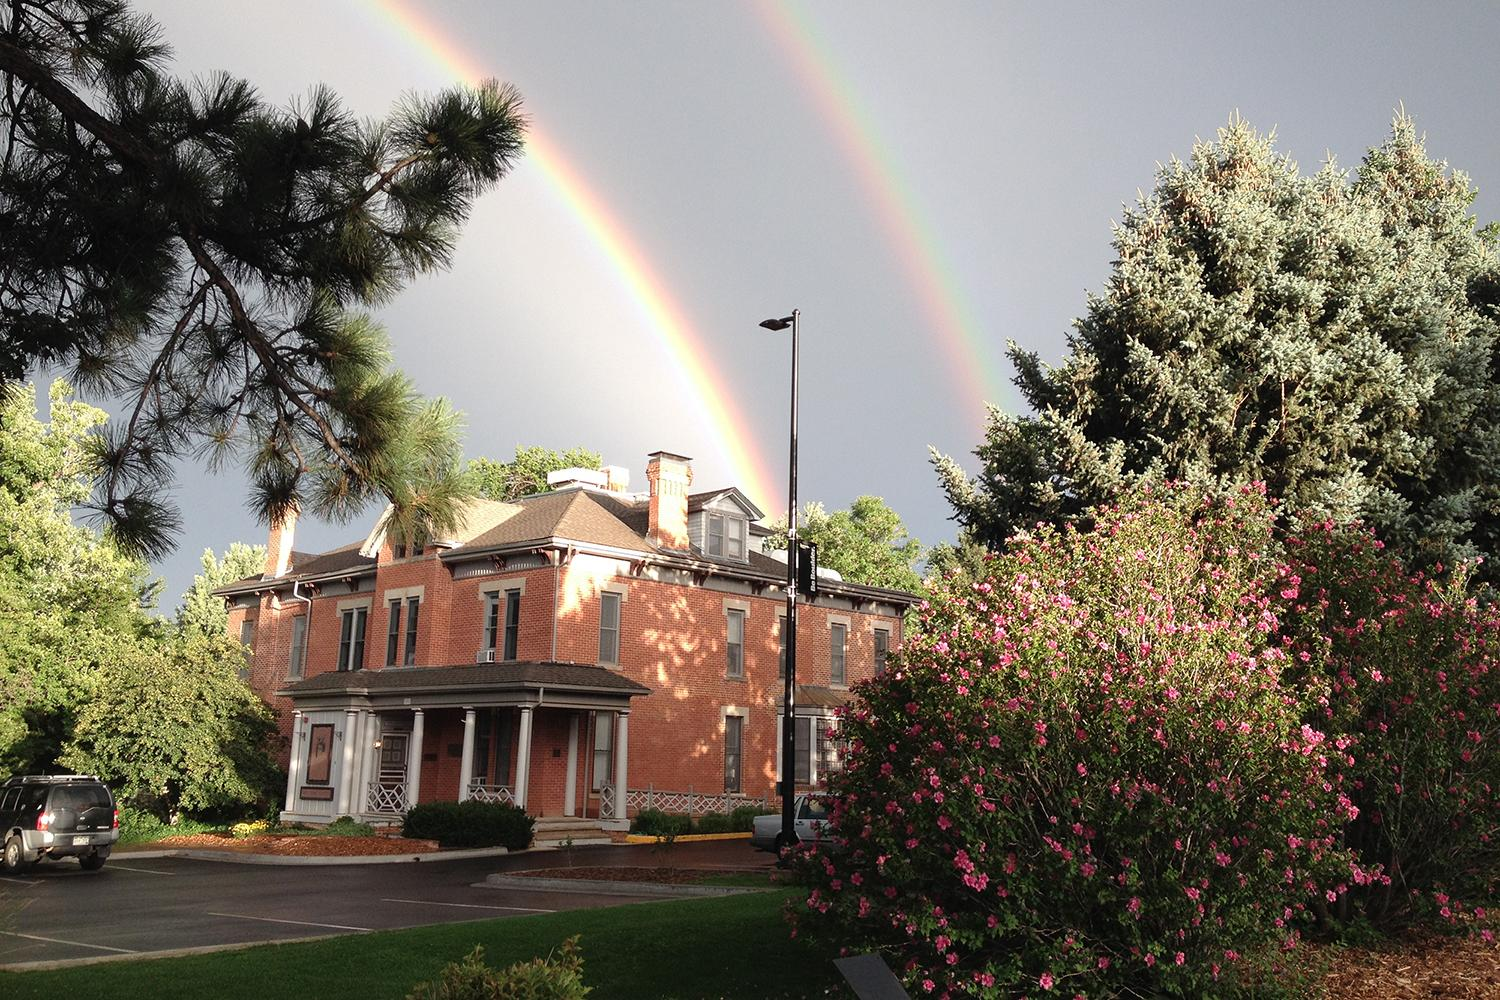 cu boulder Koenig alumni center under a double rainbow